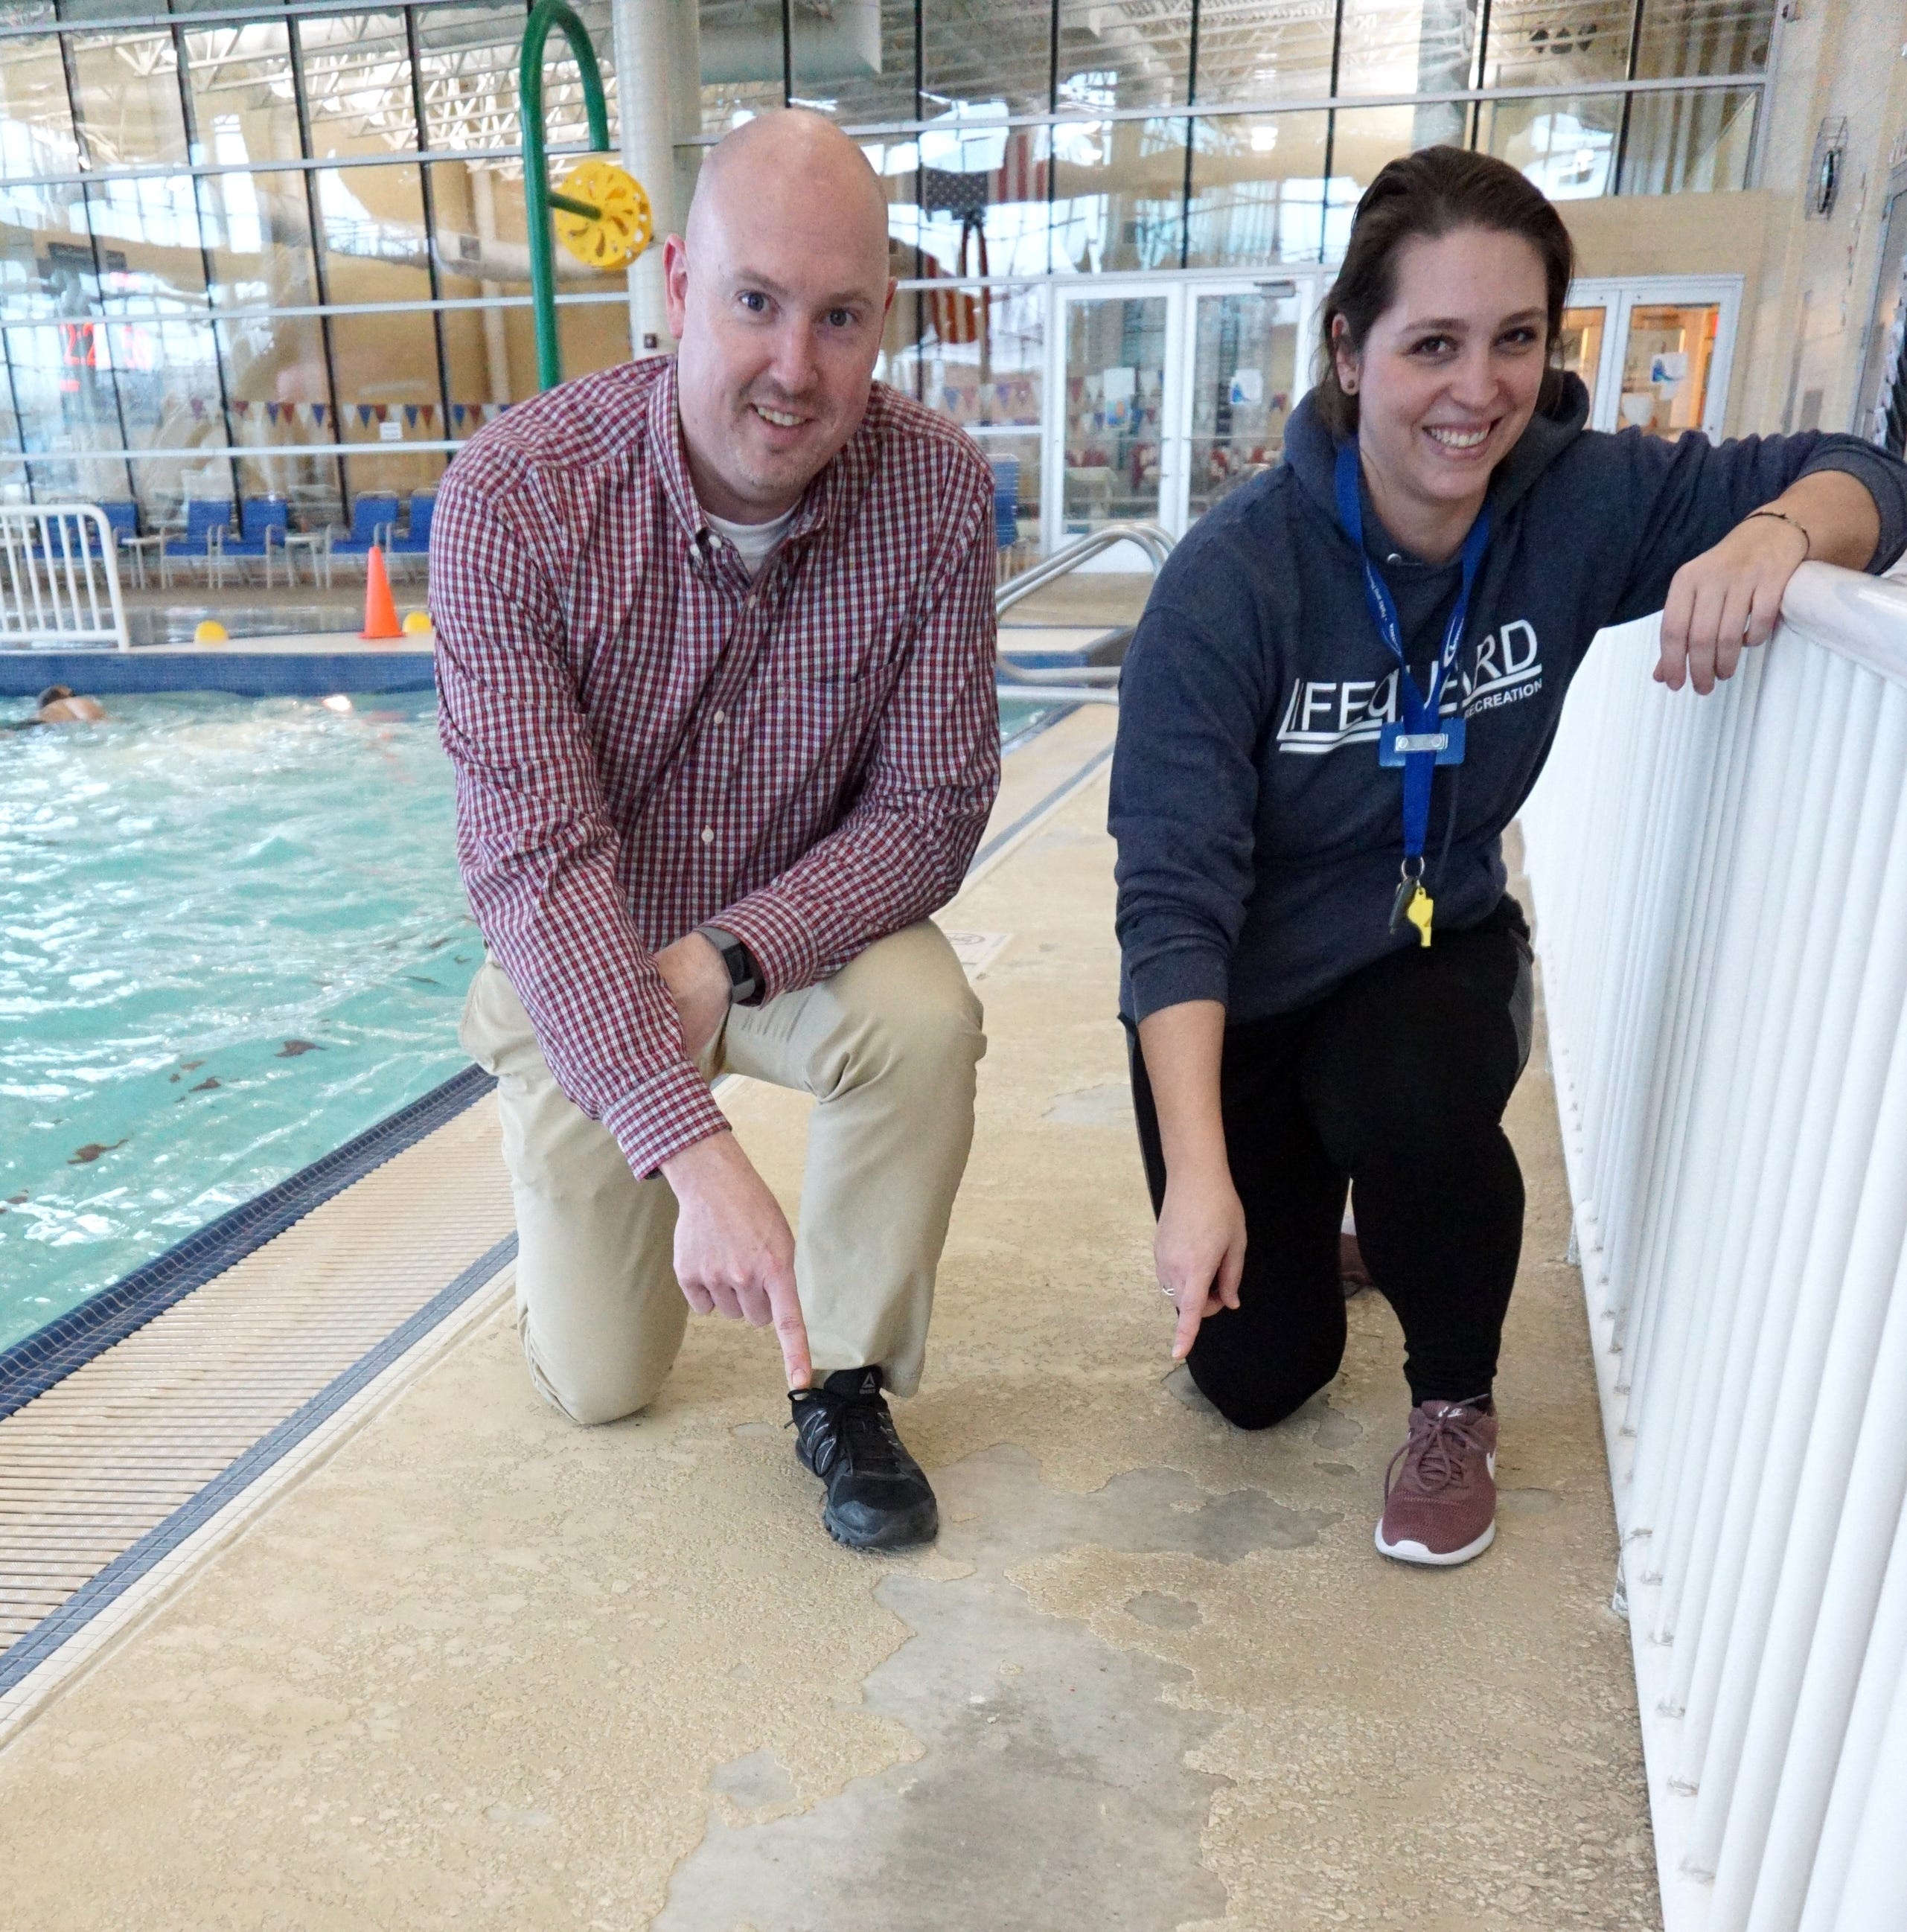 Livonia rec center pool due for major renovations later this summer